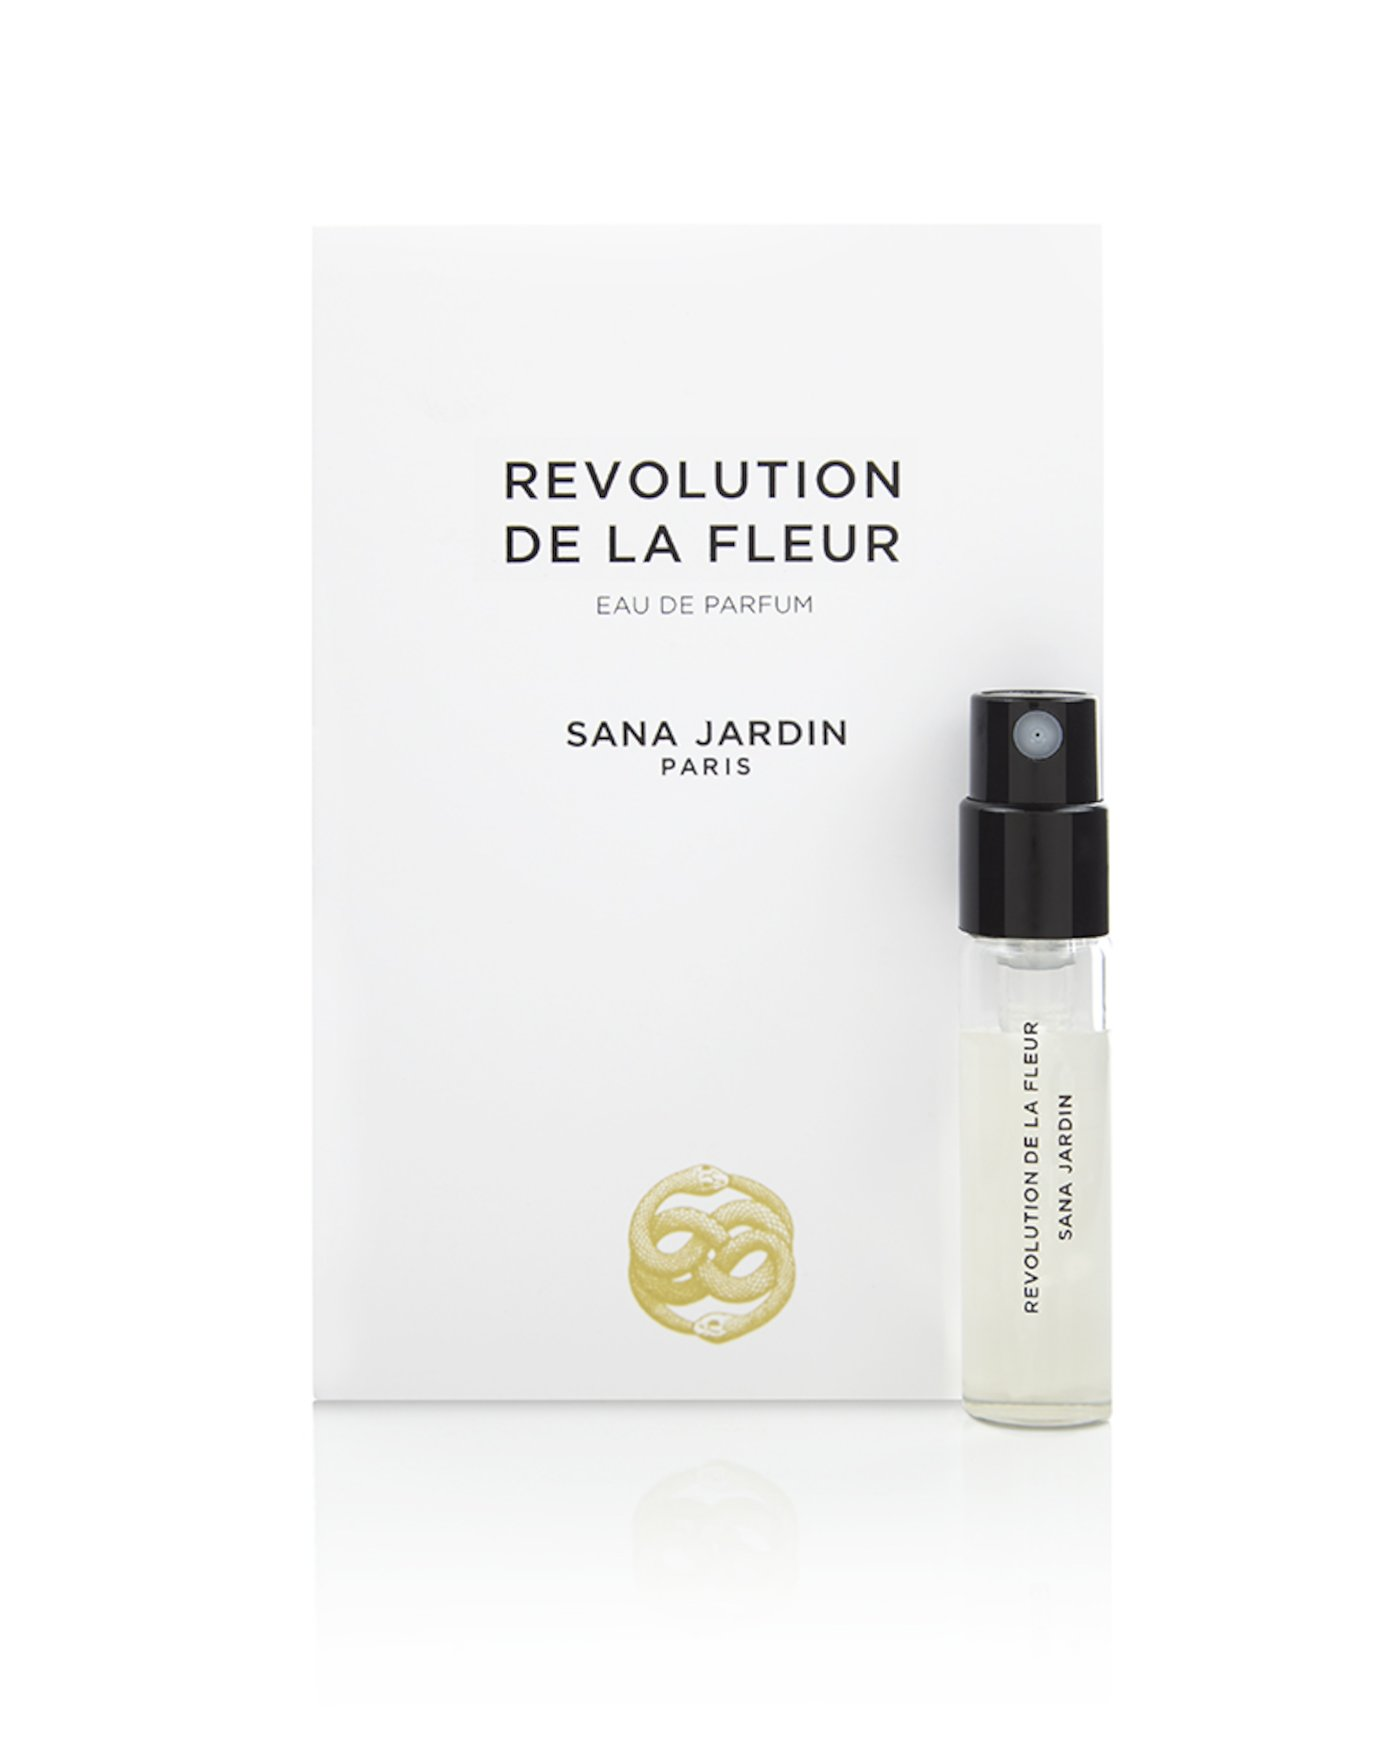 Revolution de la Fleur 2ml in card